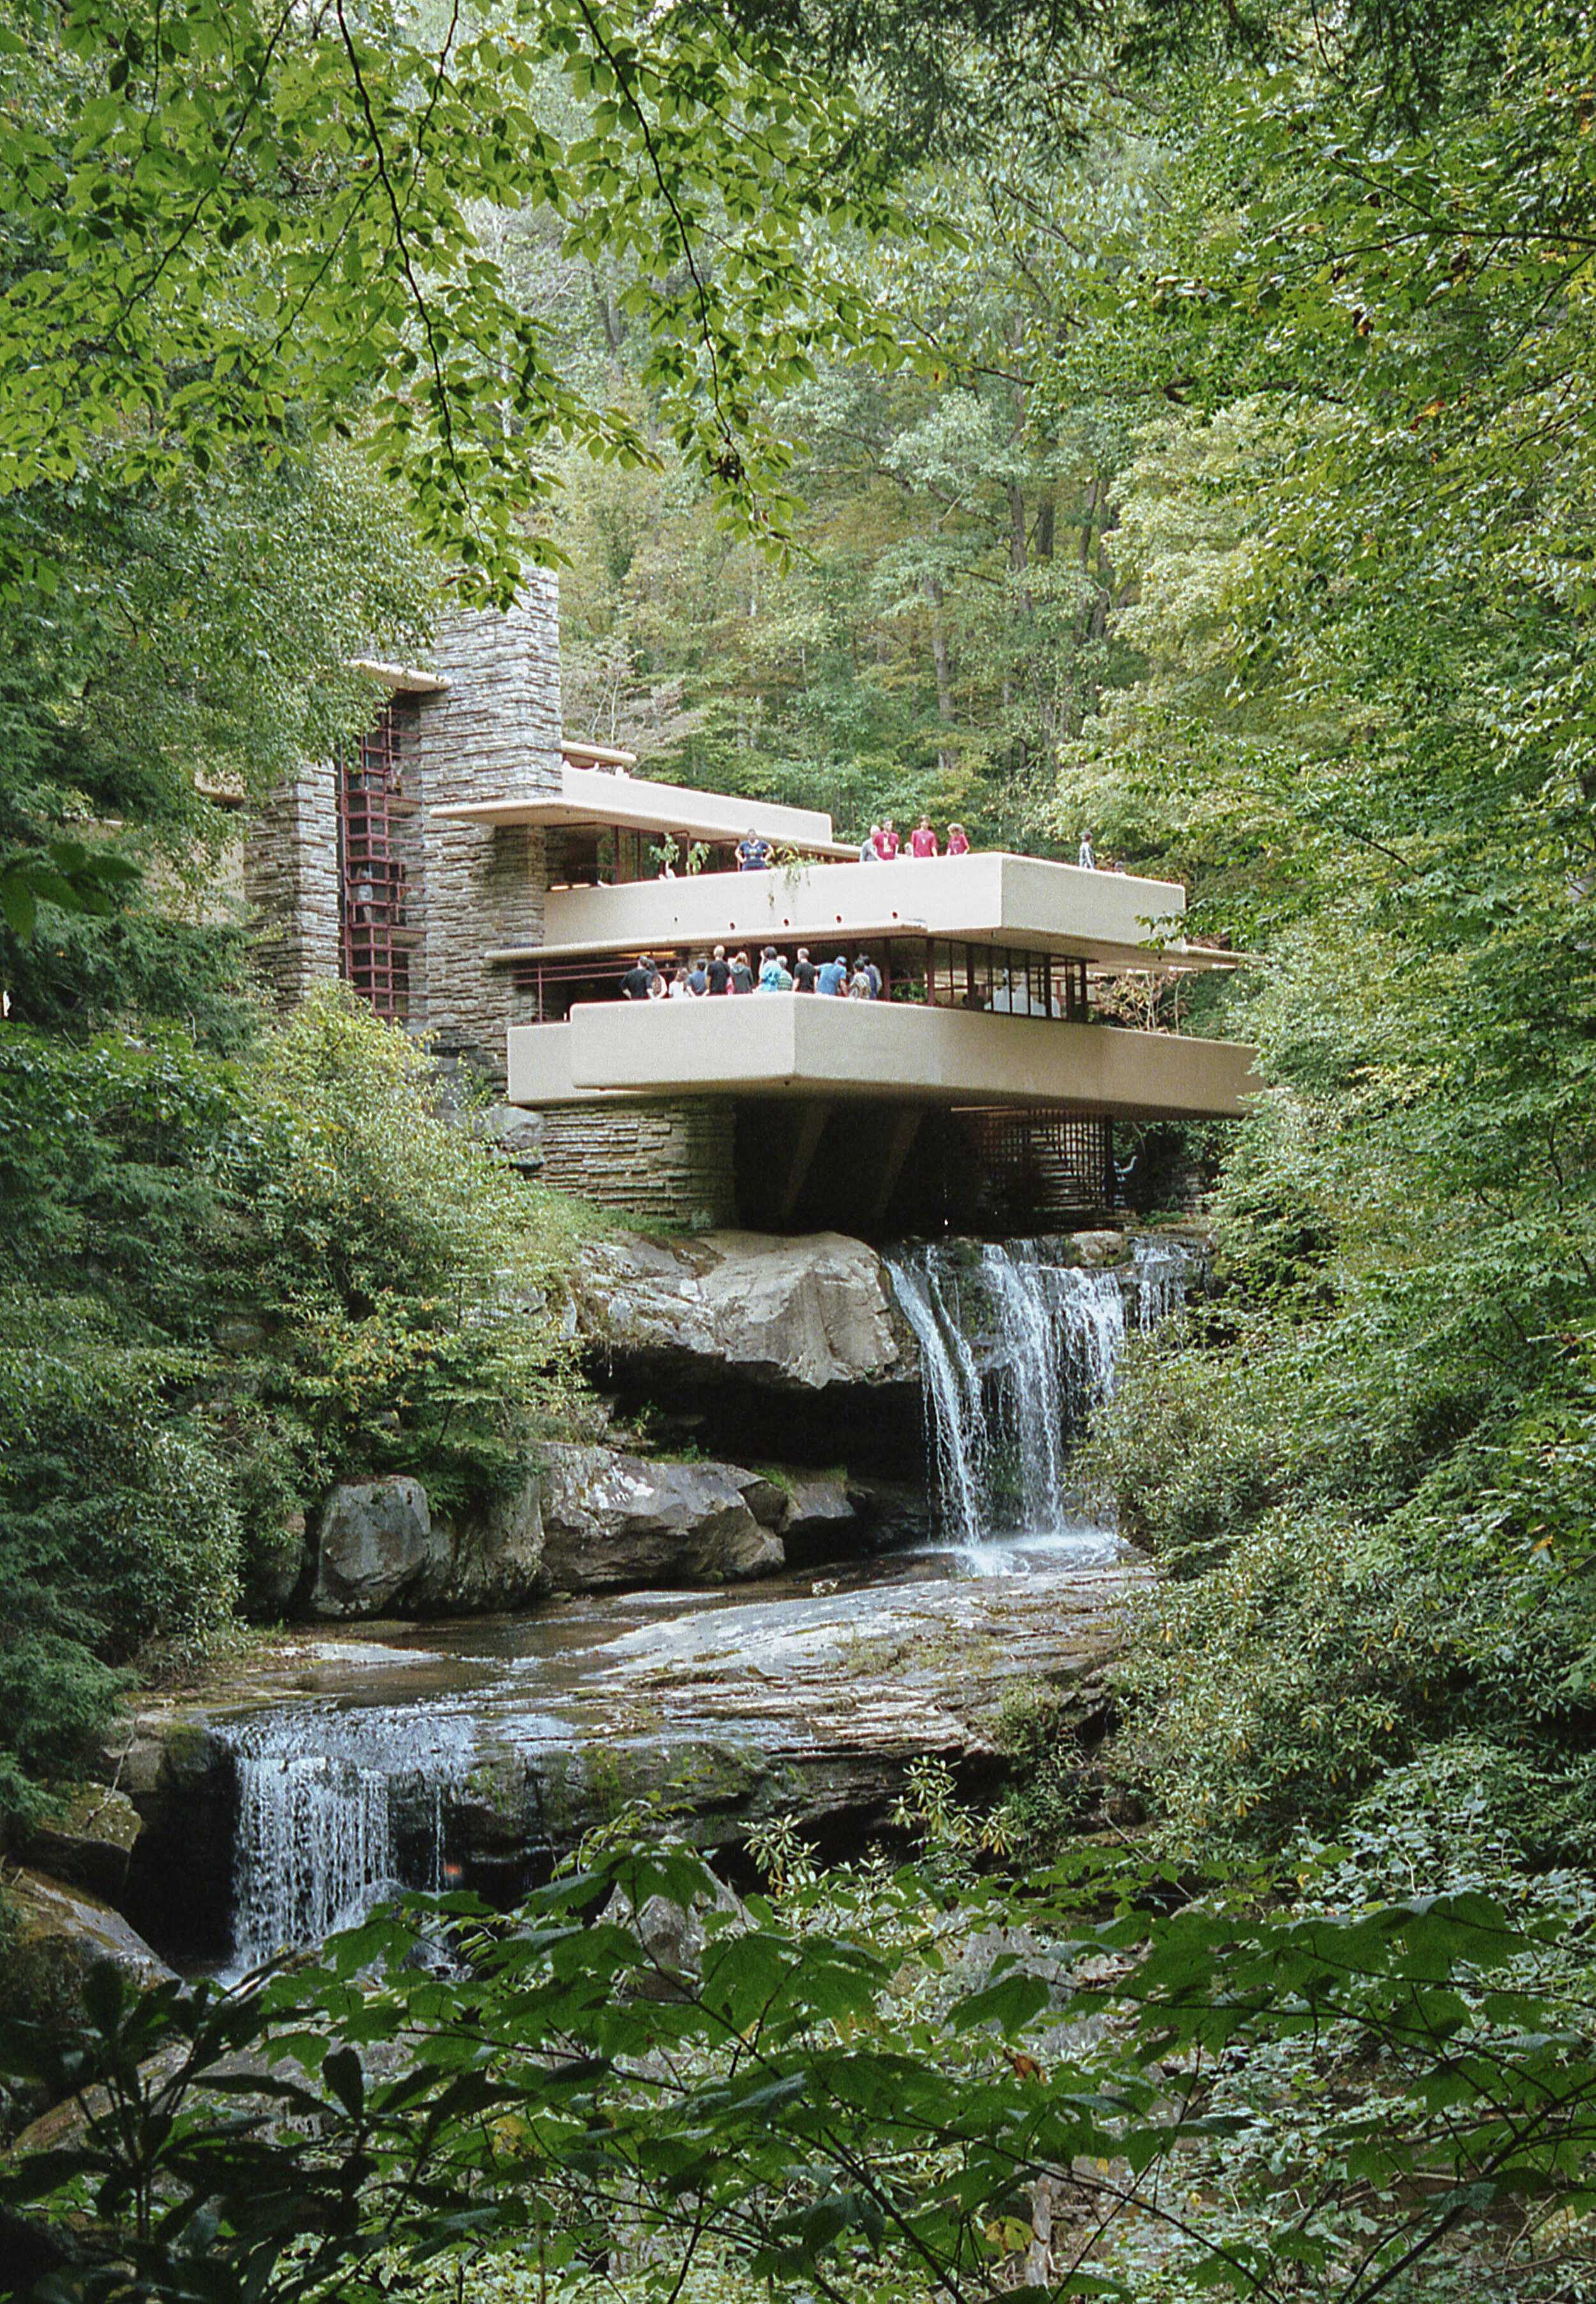 Frank Lloyd Wright's Falling Water home on Sept. 8, 2019 in Mill Run, Pa. | Photo by: Noah Riffe | Shot on: Nikon F100 with Portra 400